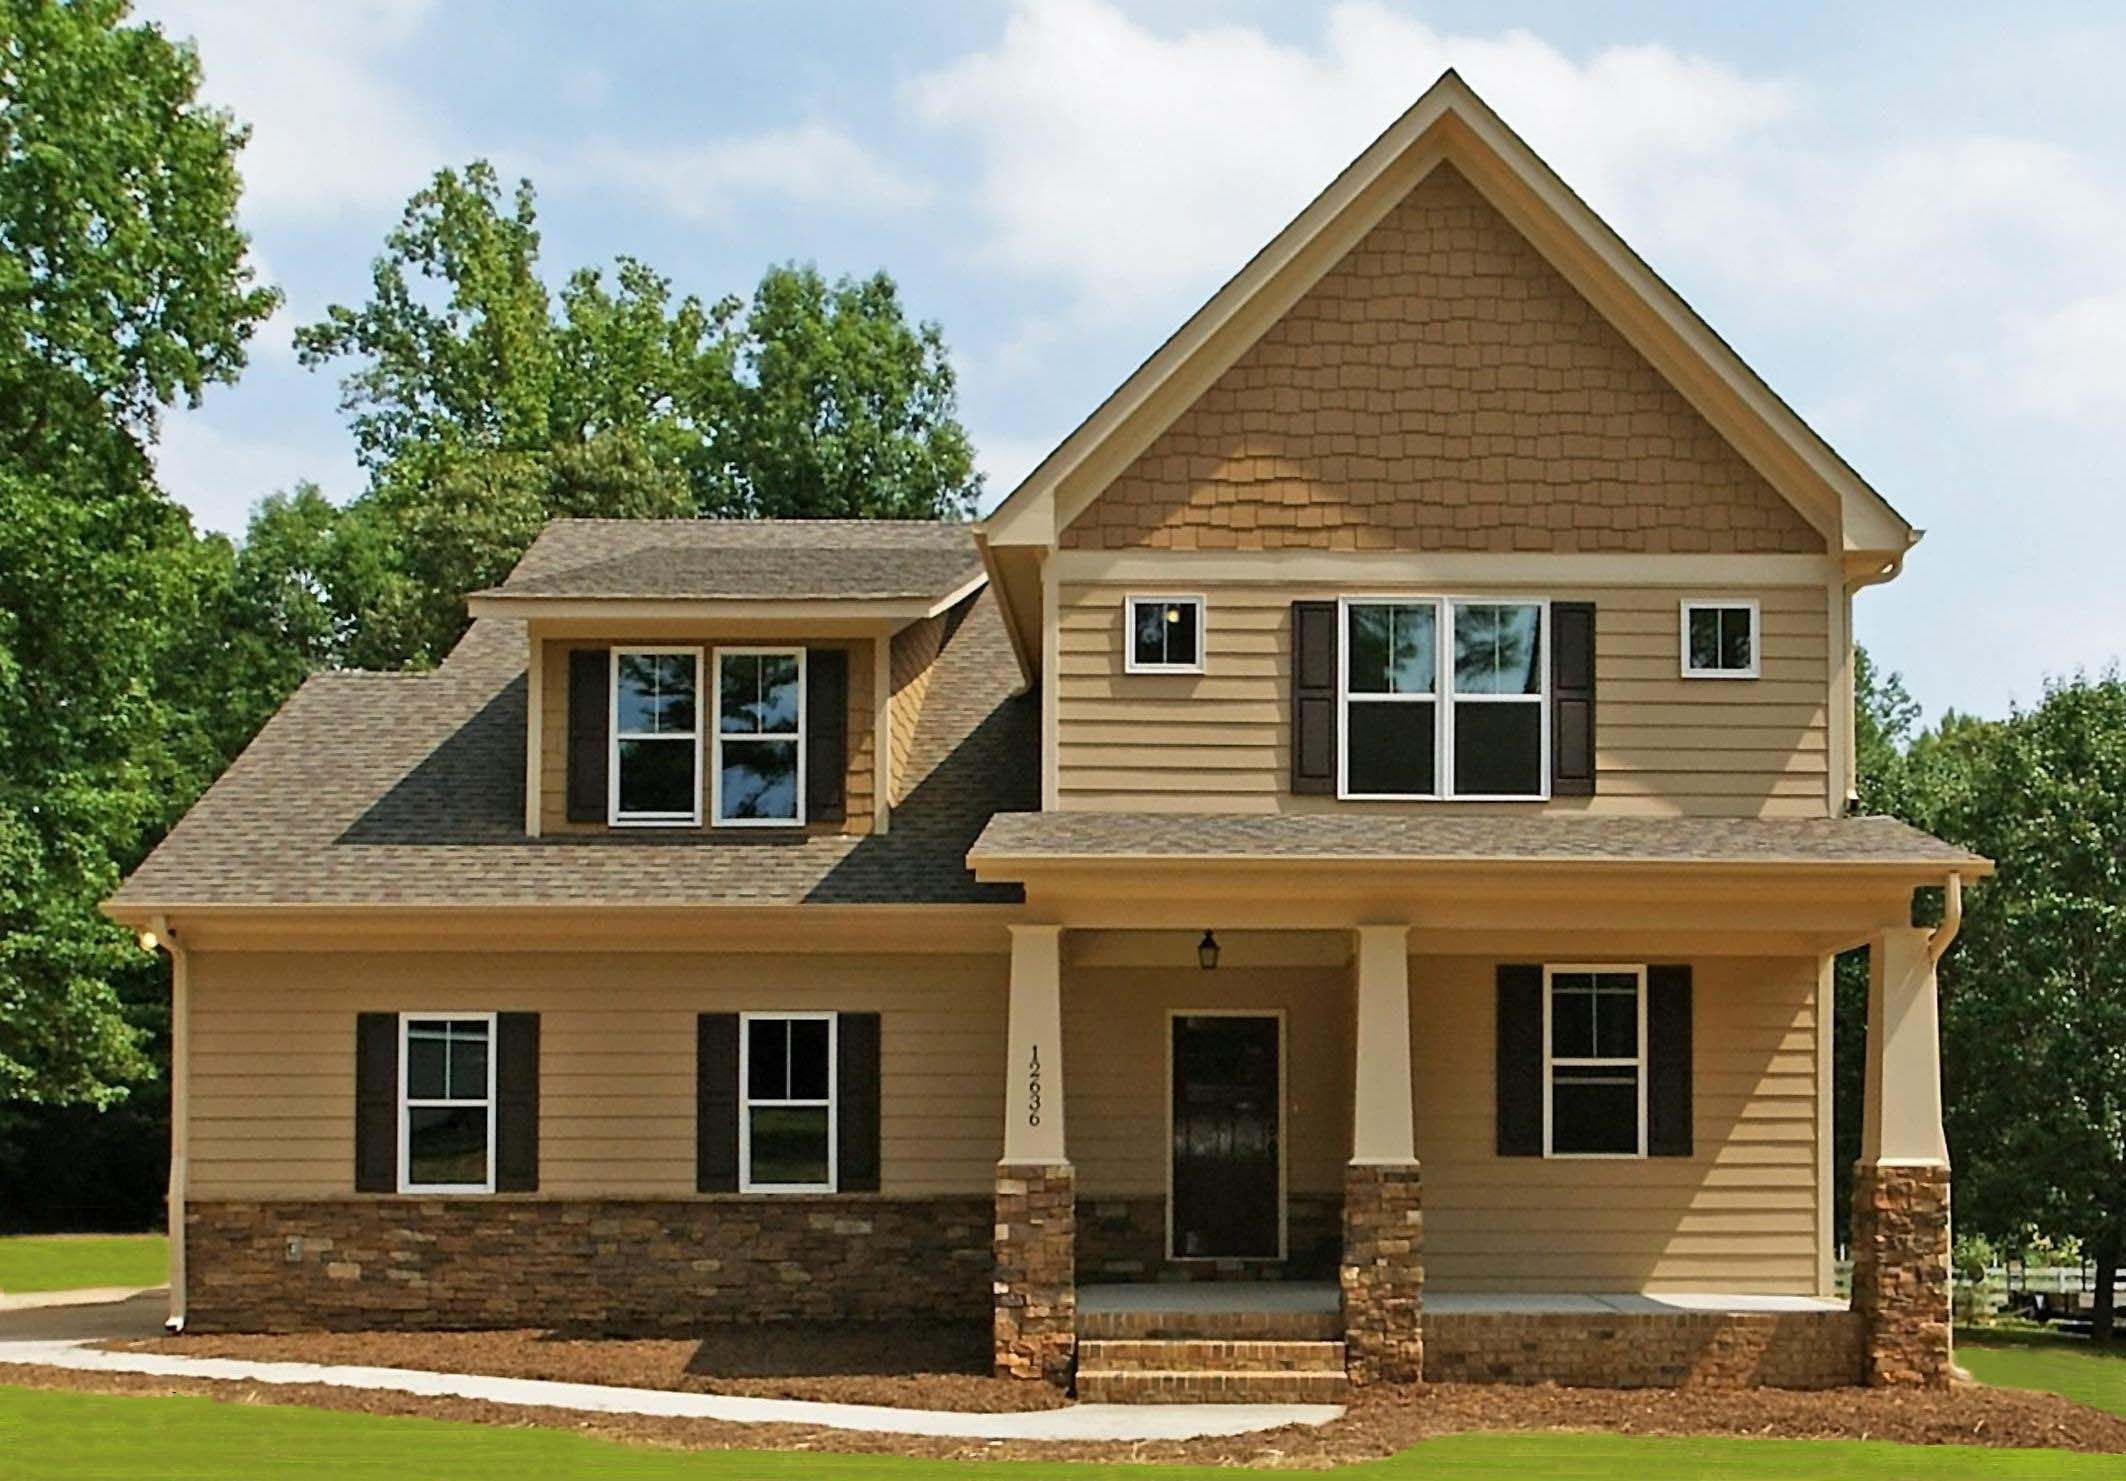 Beautiful Home Design With Craftsman Style Siding And Nice Small Terrace  With Creamy Accent Inspiration With Nature Surro. Part 83